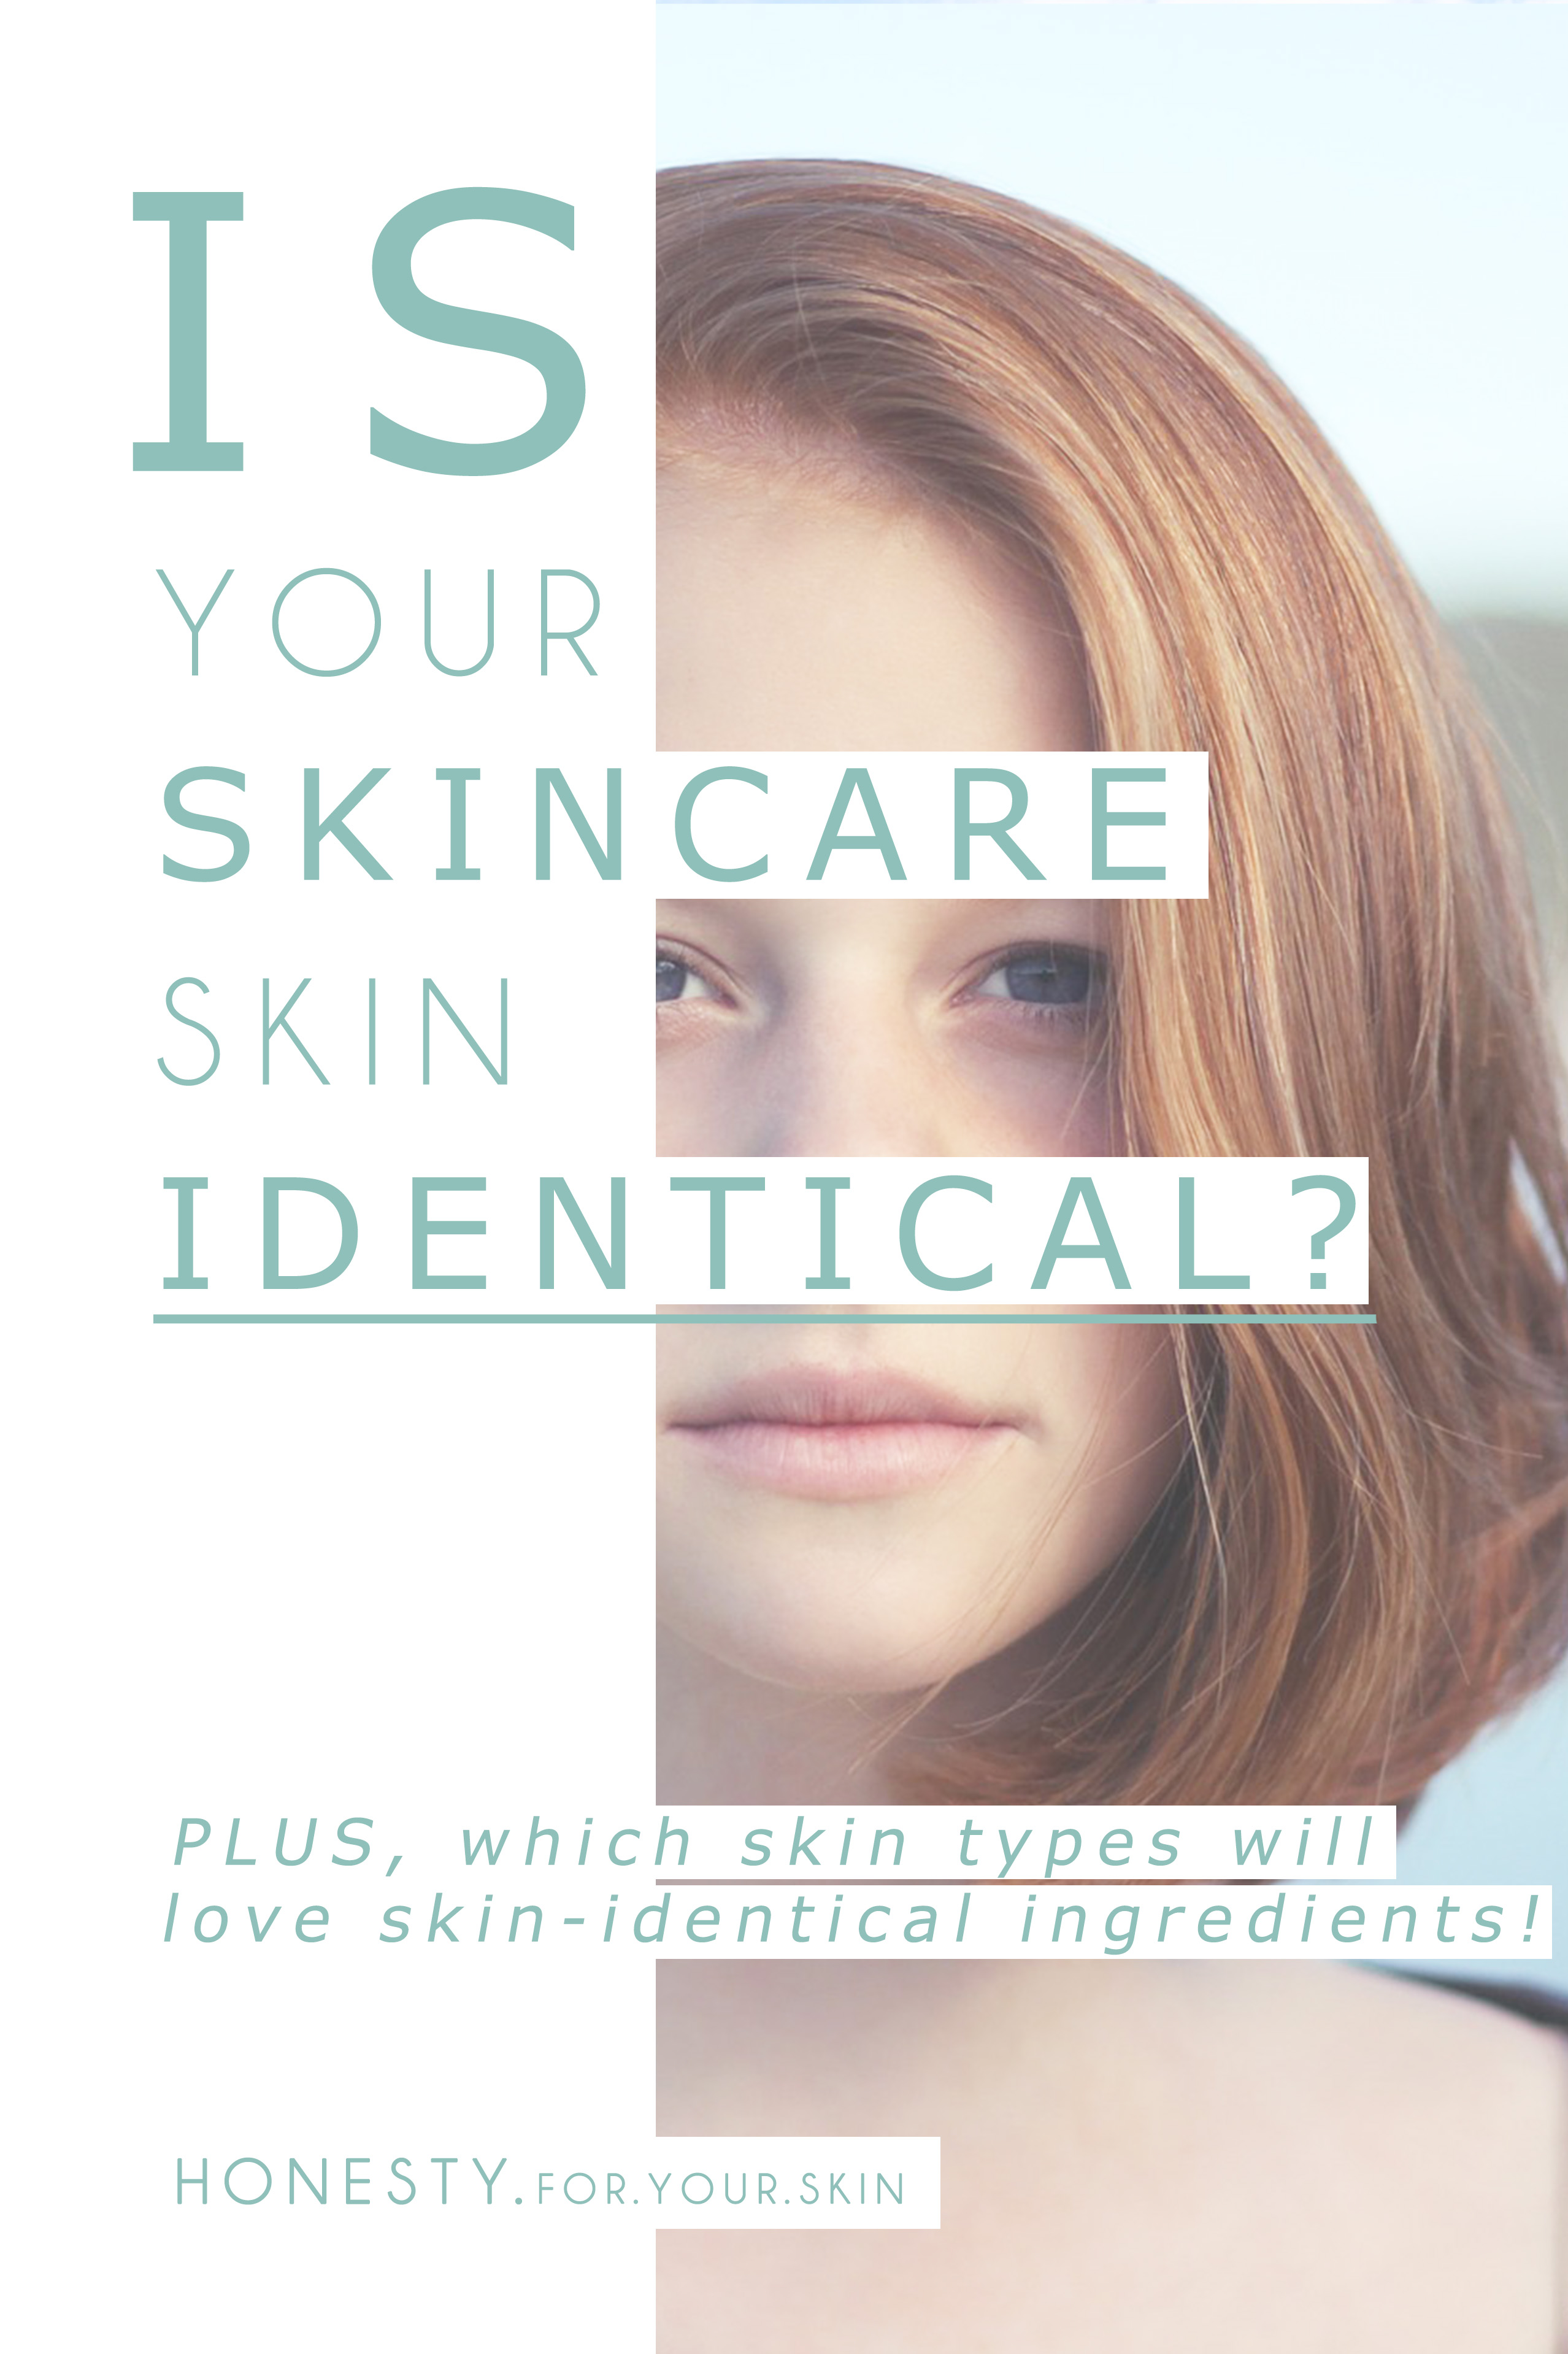 Have you heard of skin identical ingredients? This is THE low-down on what they are, which skin-types should use them and where to find 'em!